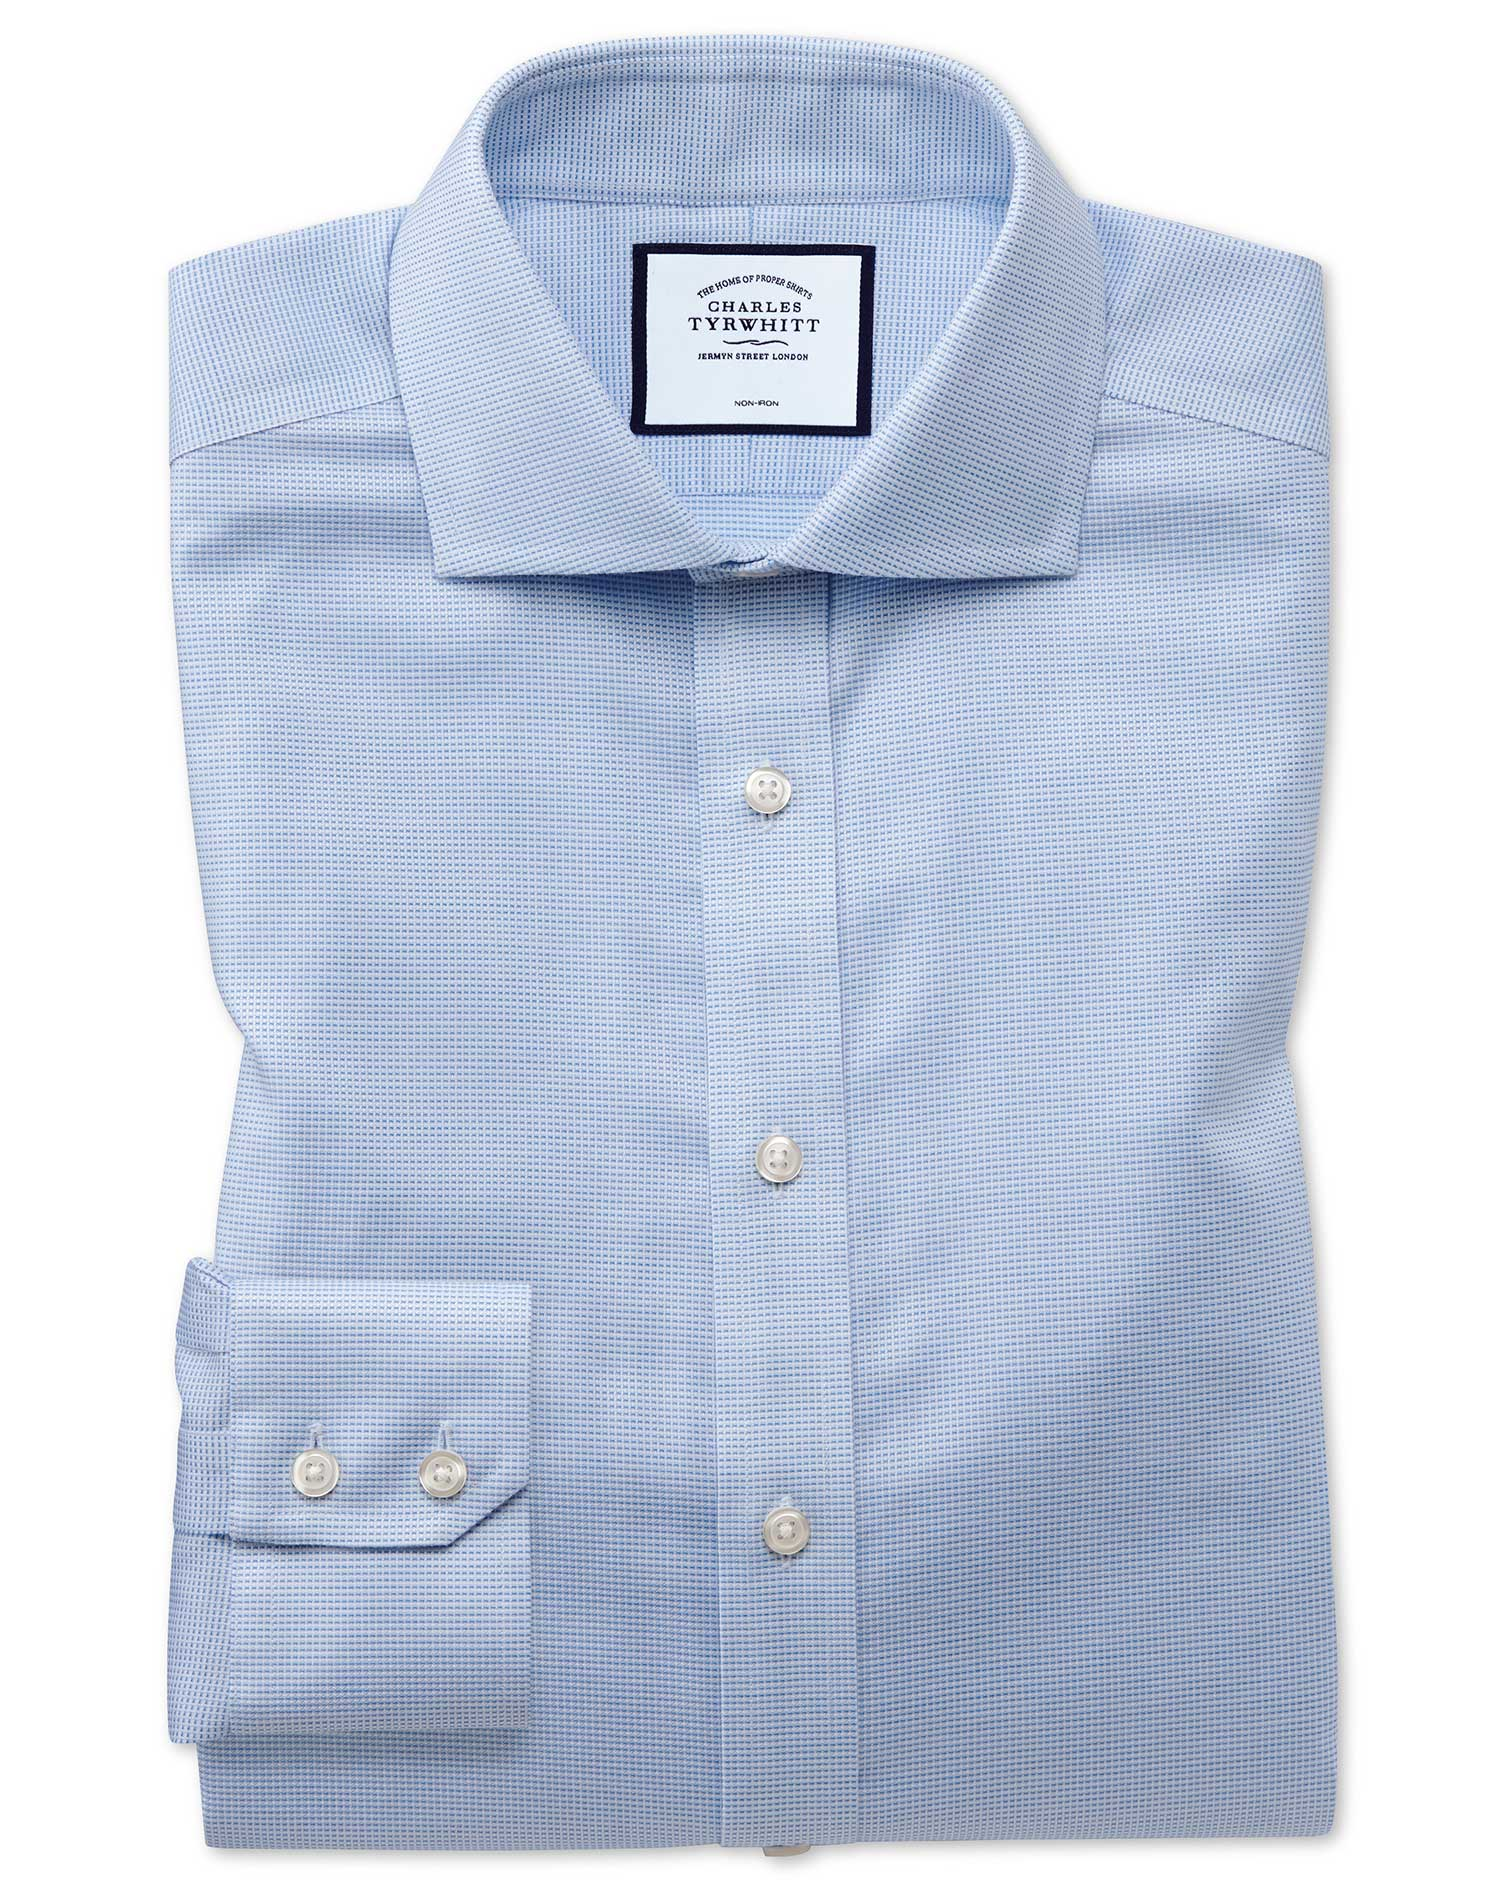 Super Slim Fit Non-Iron Cotton Stretch Oxford Sky Blue Formal Shirt Single Cuff Size 16.5/34 by Char